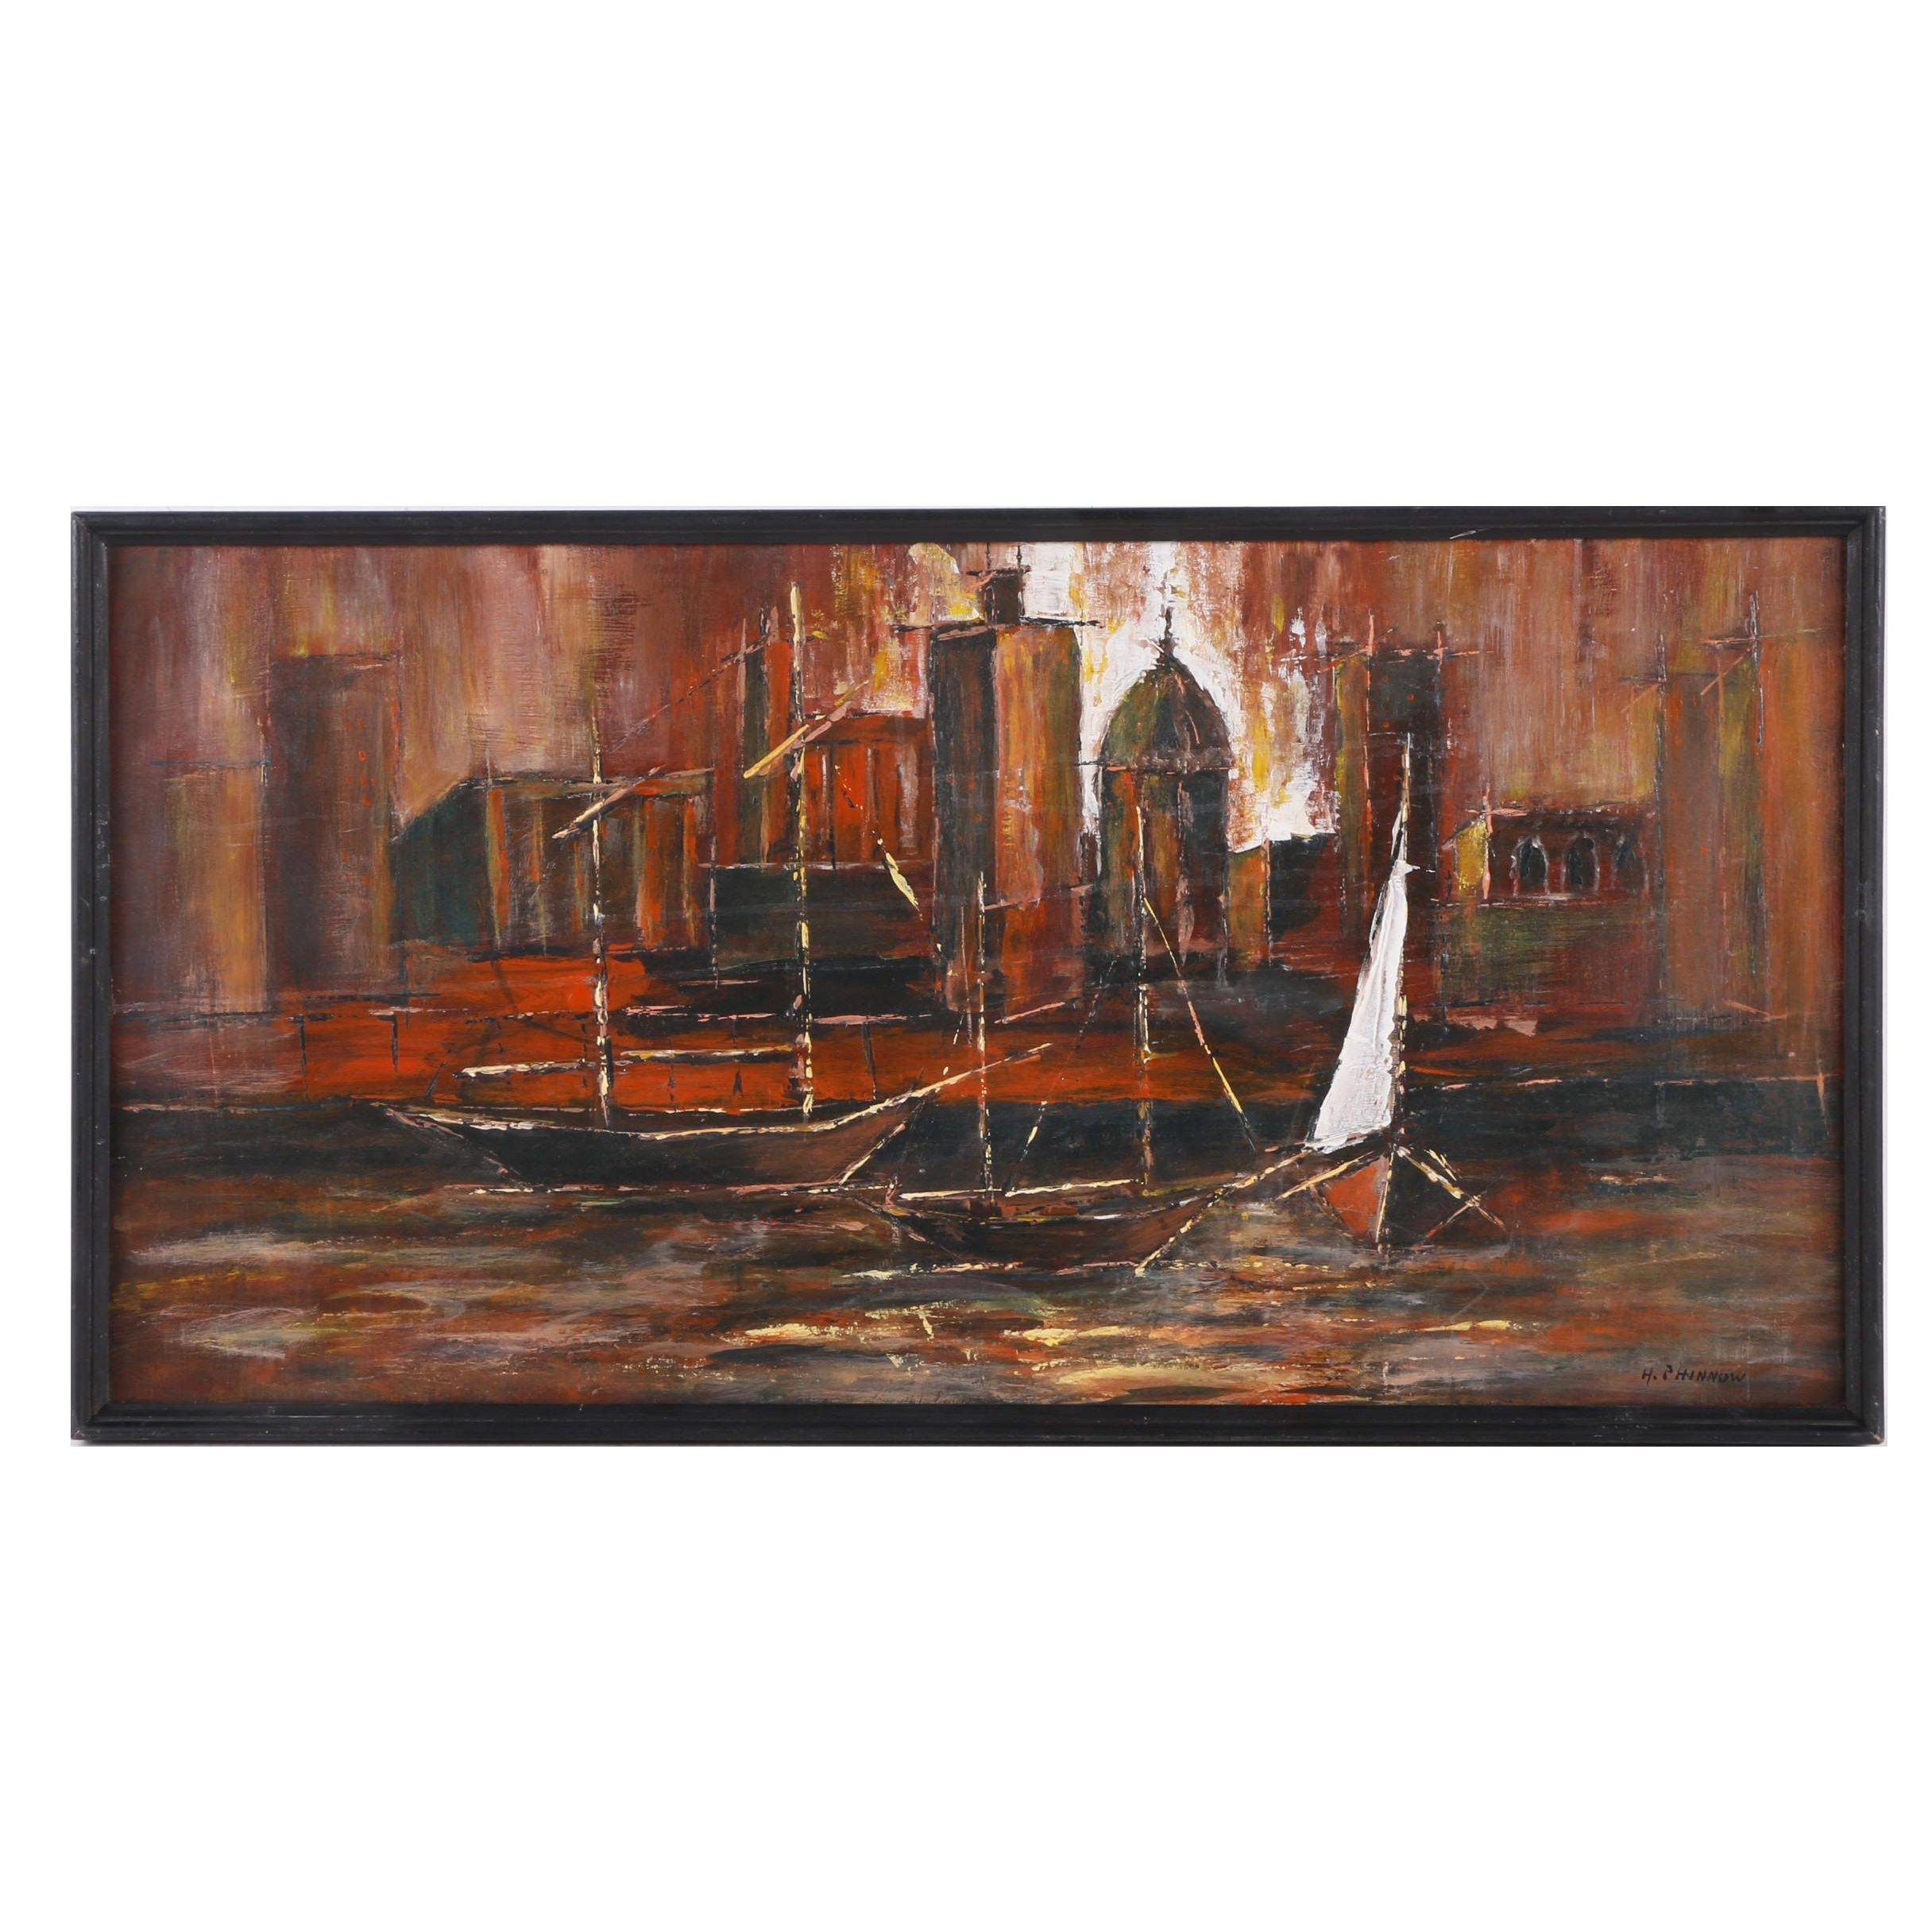 H. Phinnow Oil Painting of City on the Water